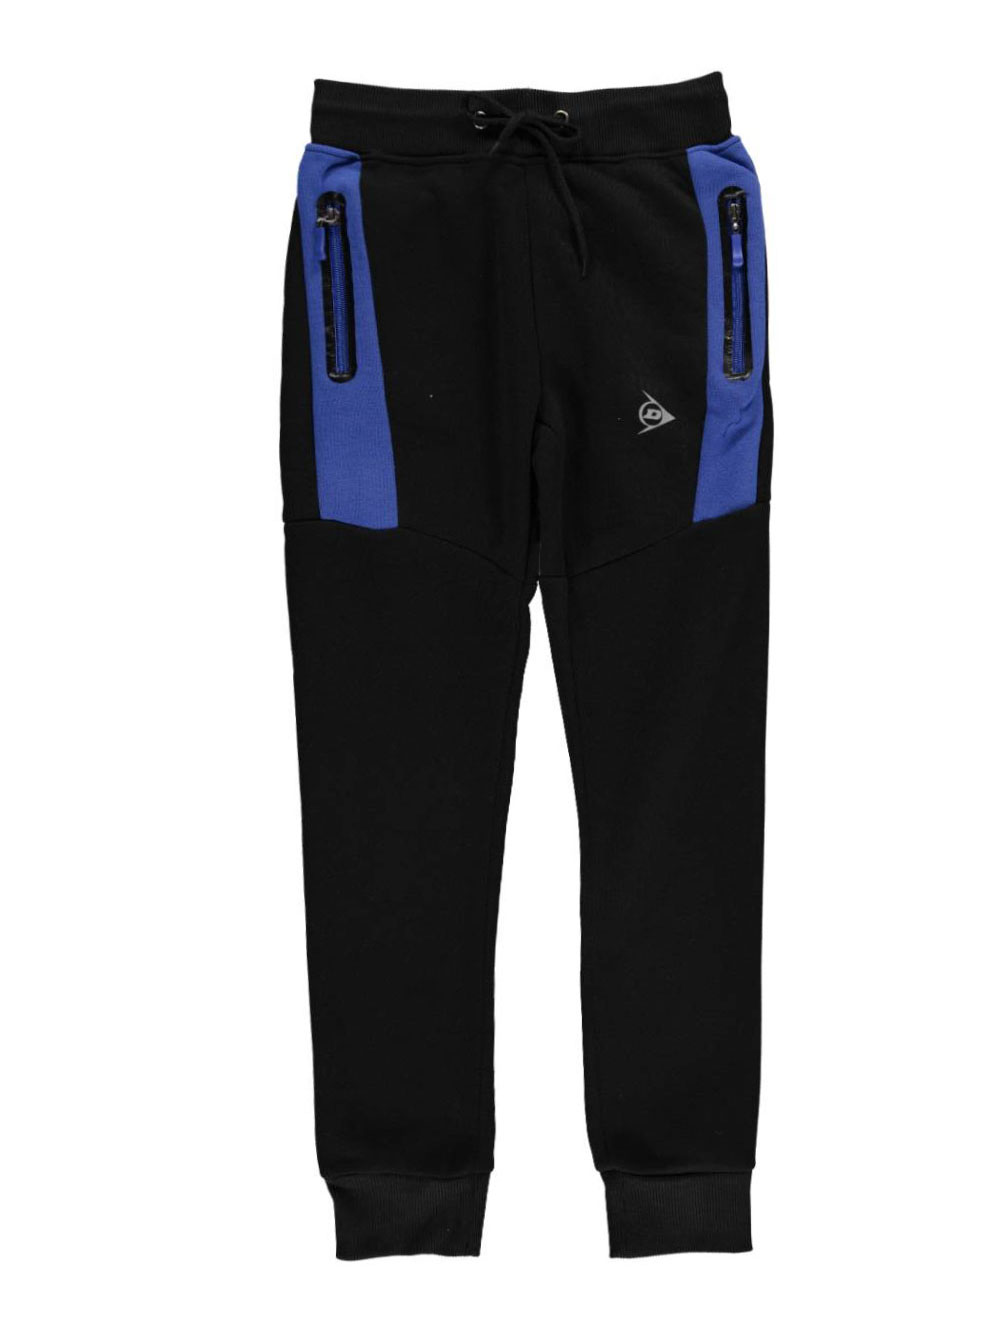 Image of Dunlop Big Boys Block Line Joggers Sizes 8  20  royal blue 1416